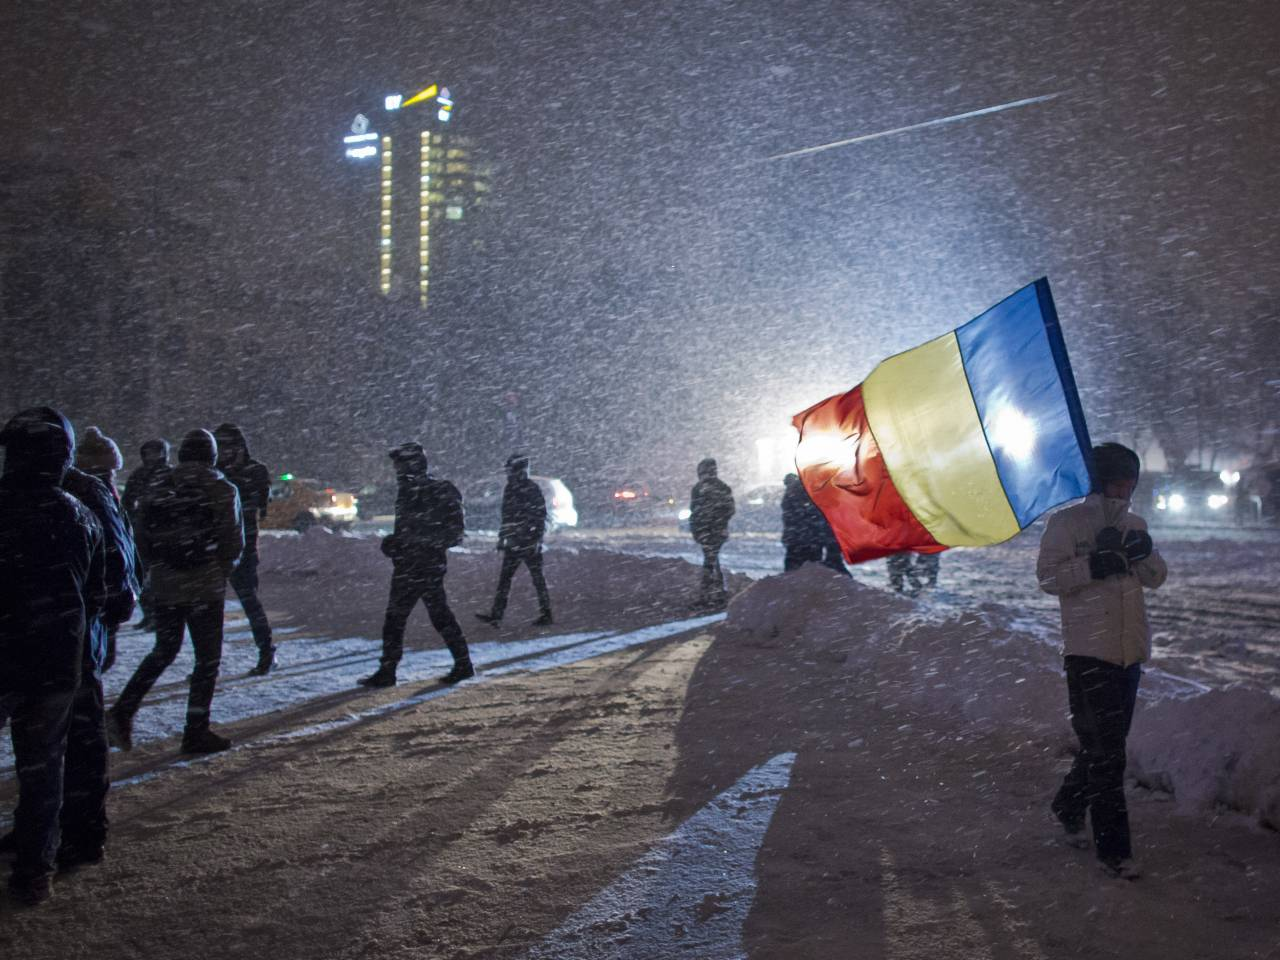 Romanian justice minister resigns as anti-corruption protests grow